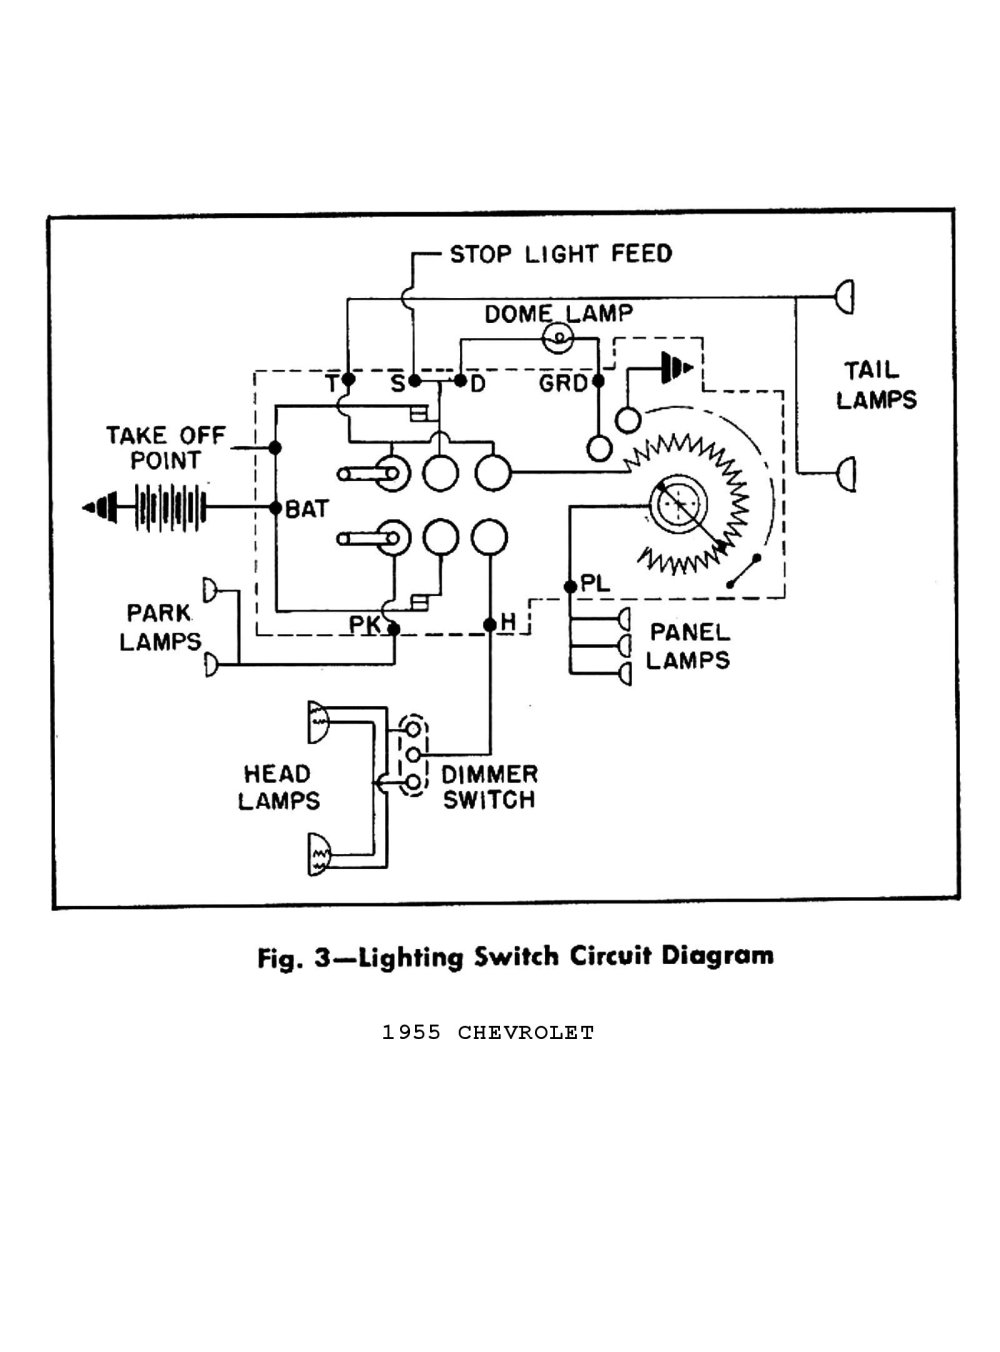 medium resolution of 1978 gmc truck fuse diagram wiring library1978 gmc truck fuse diagram